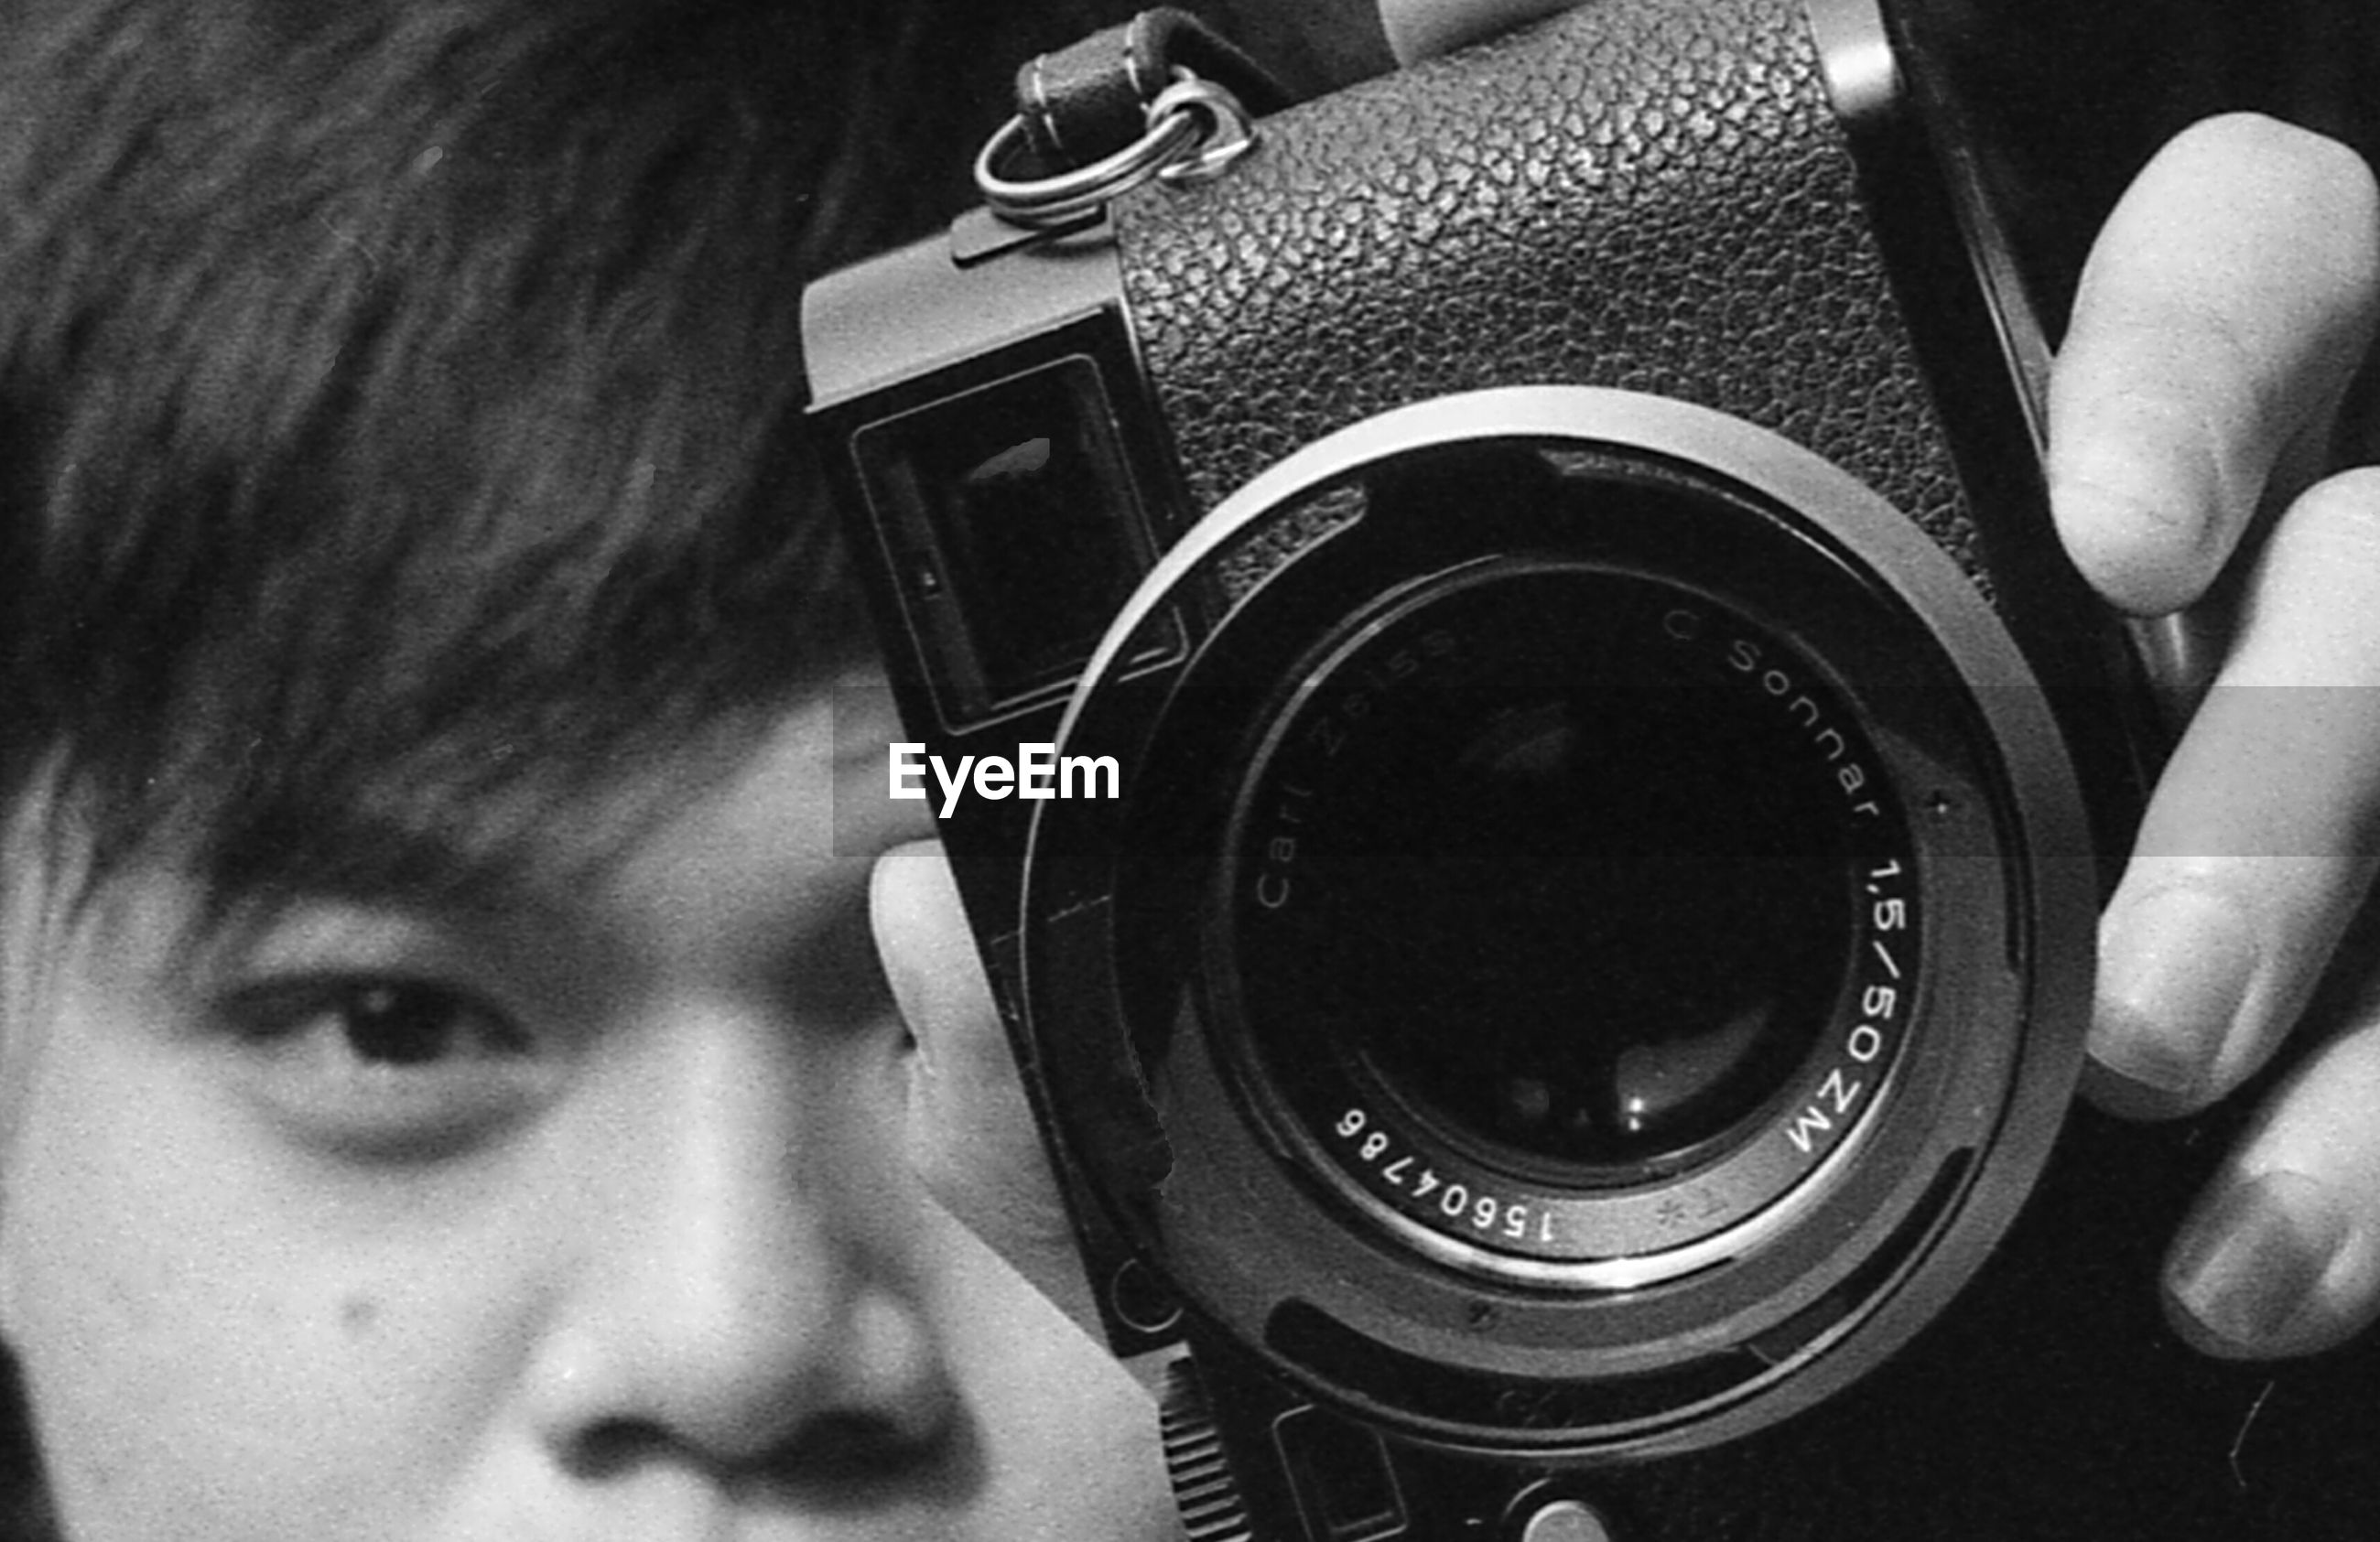 indoors, technology, photography themes, close-up, holding, person, part of, camera - photographic equipment, photographing, wireless technology, lifestyles, cropped, focus on foreground, digital camera, men, leisure activity, unrecognizable person